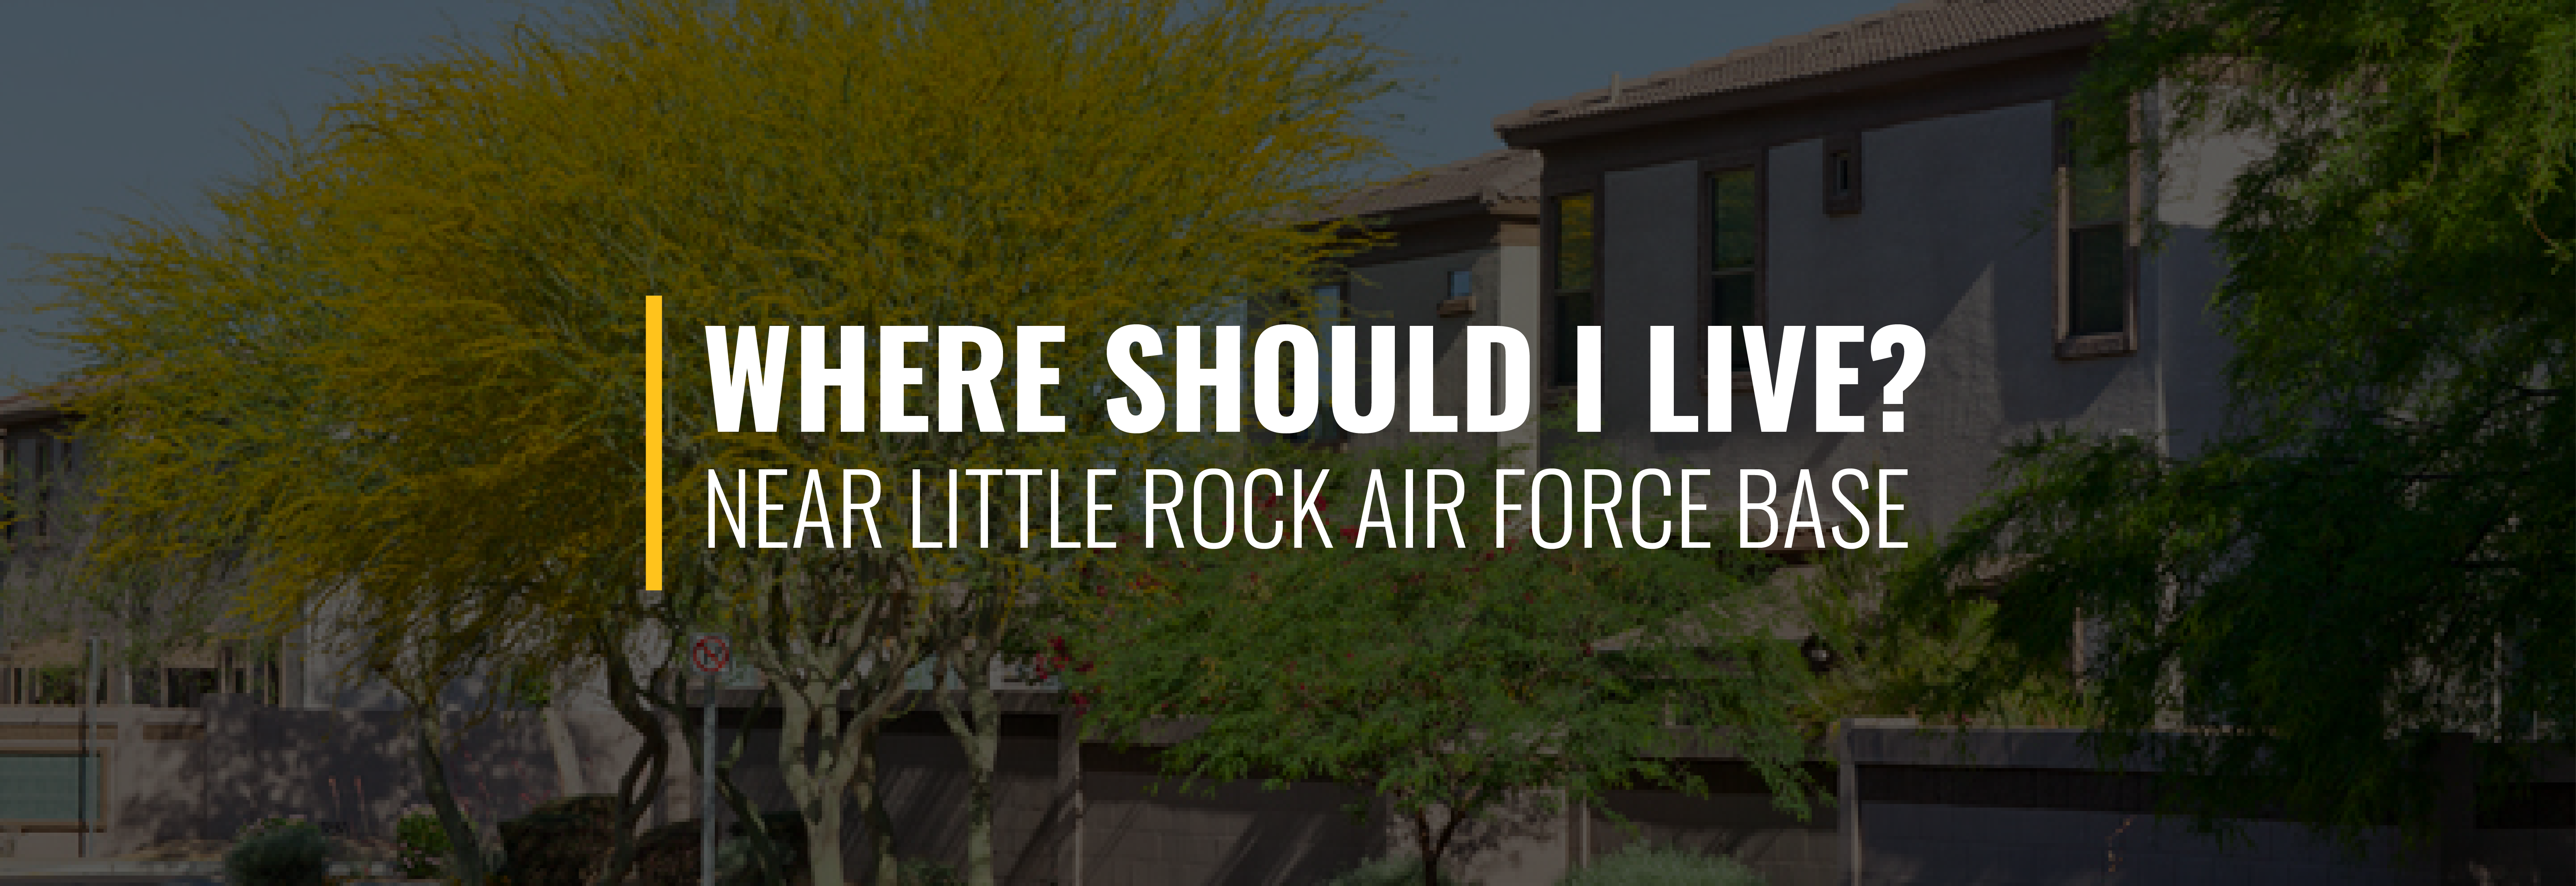 Where Should I Live Near Little Rock Air Force Base?